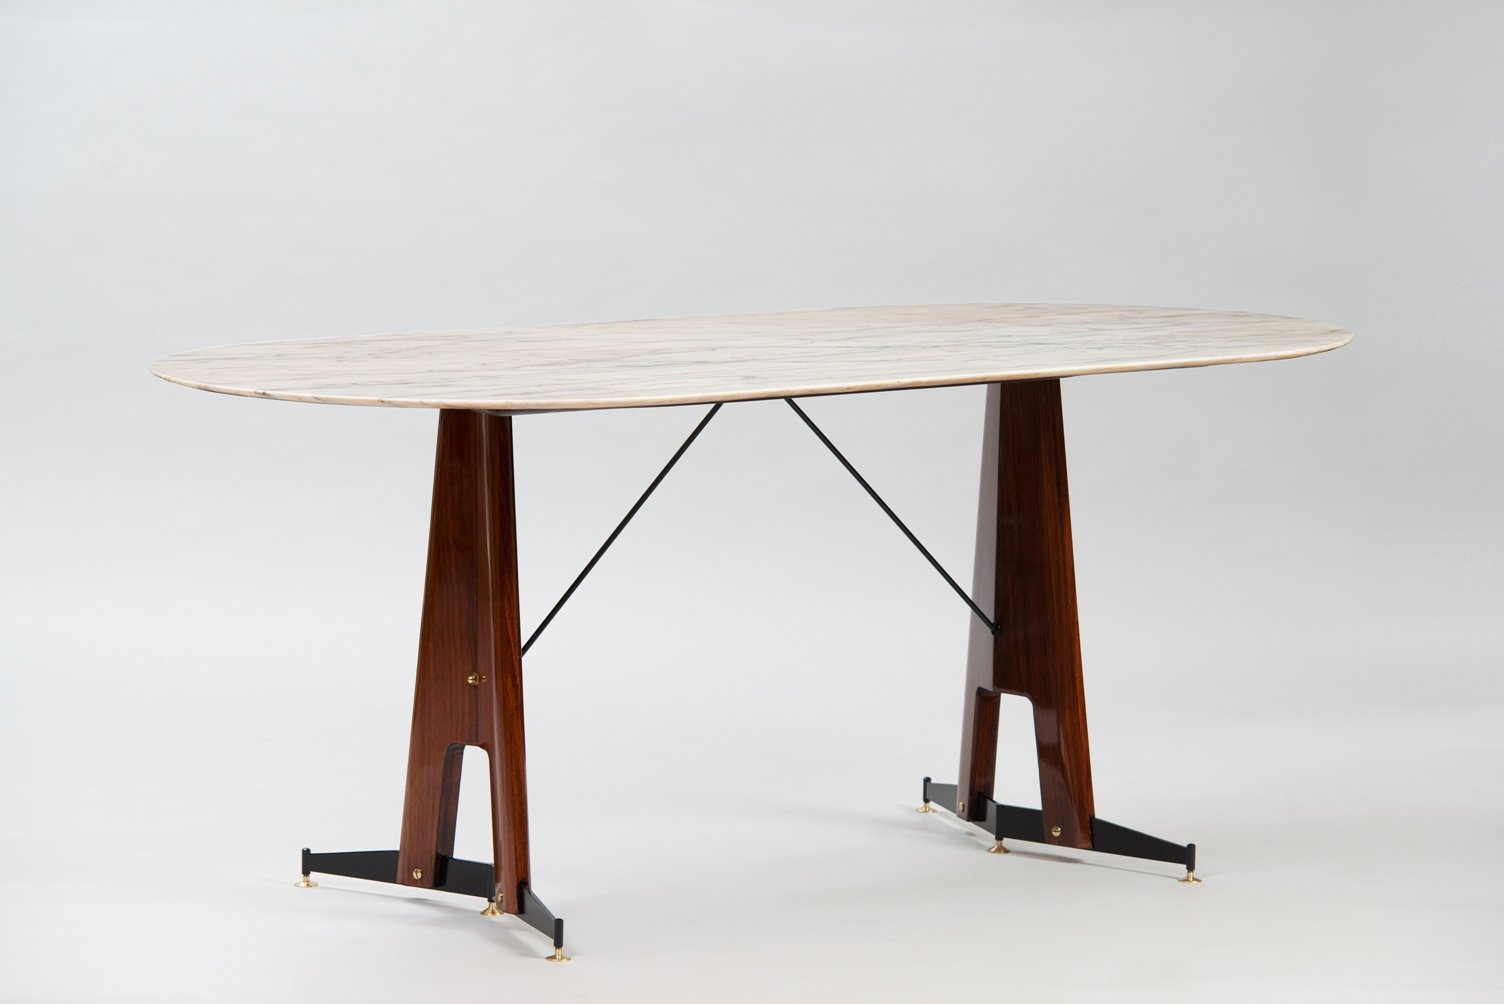 Table salle a manger marbre design for Table salle a manger 2m50